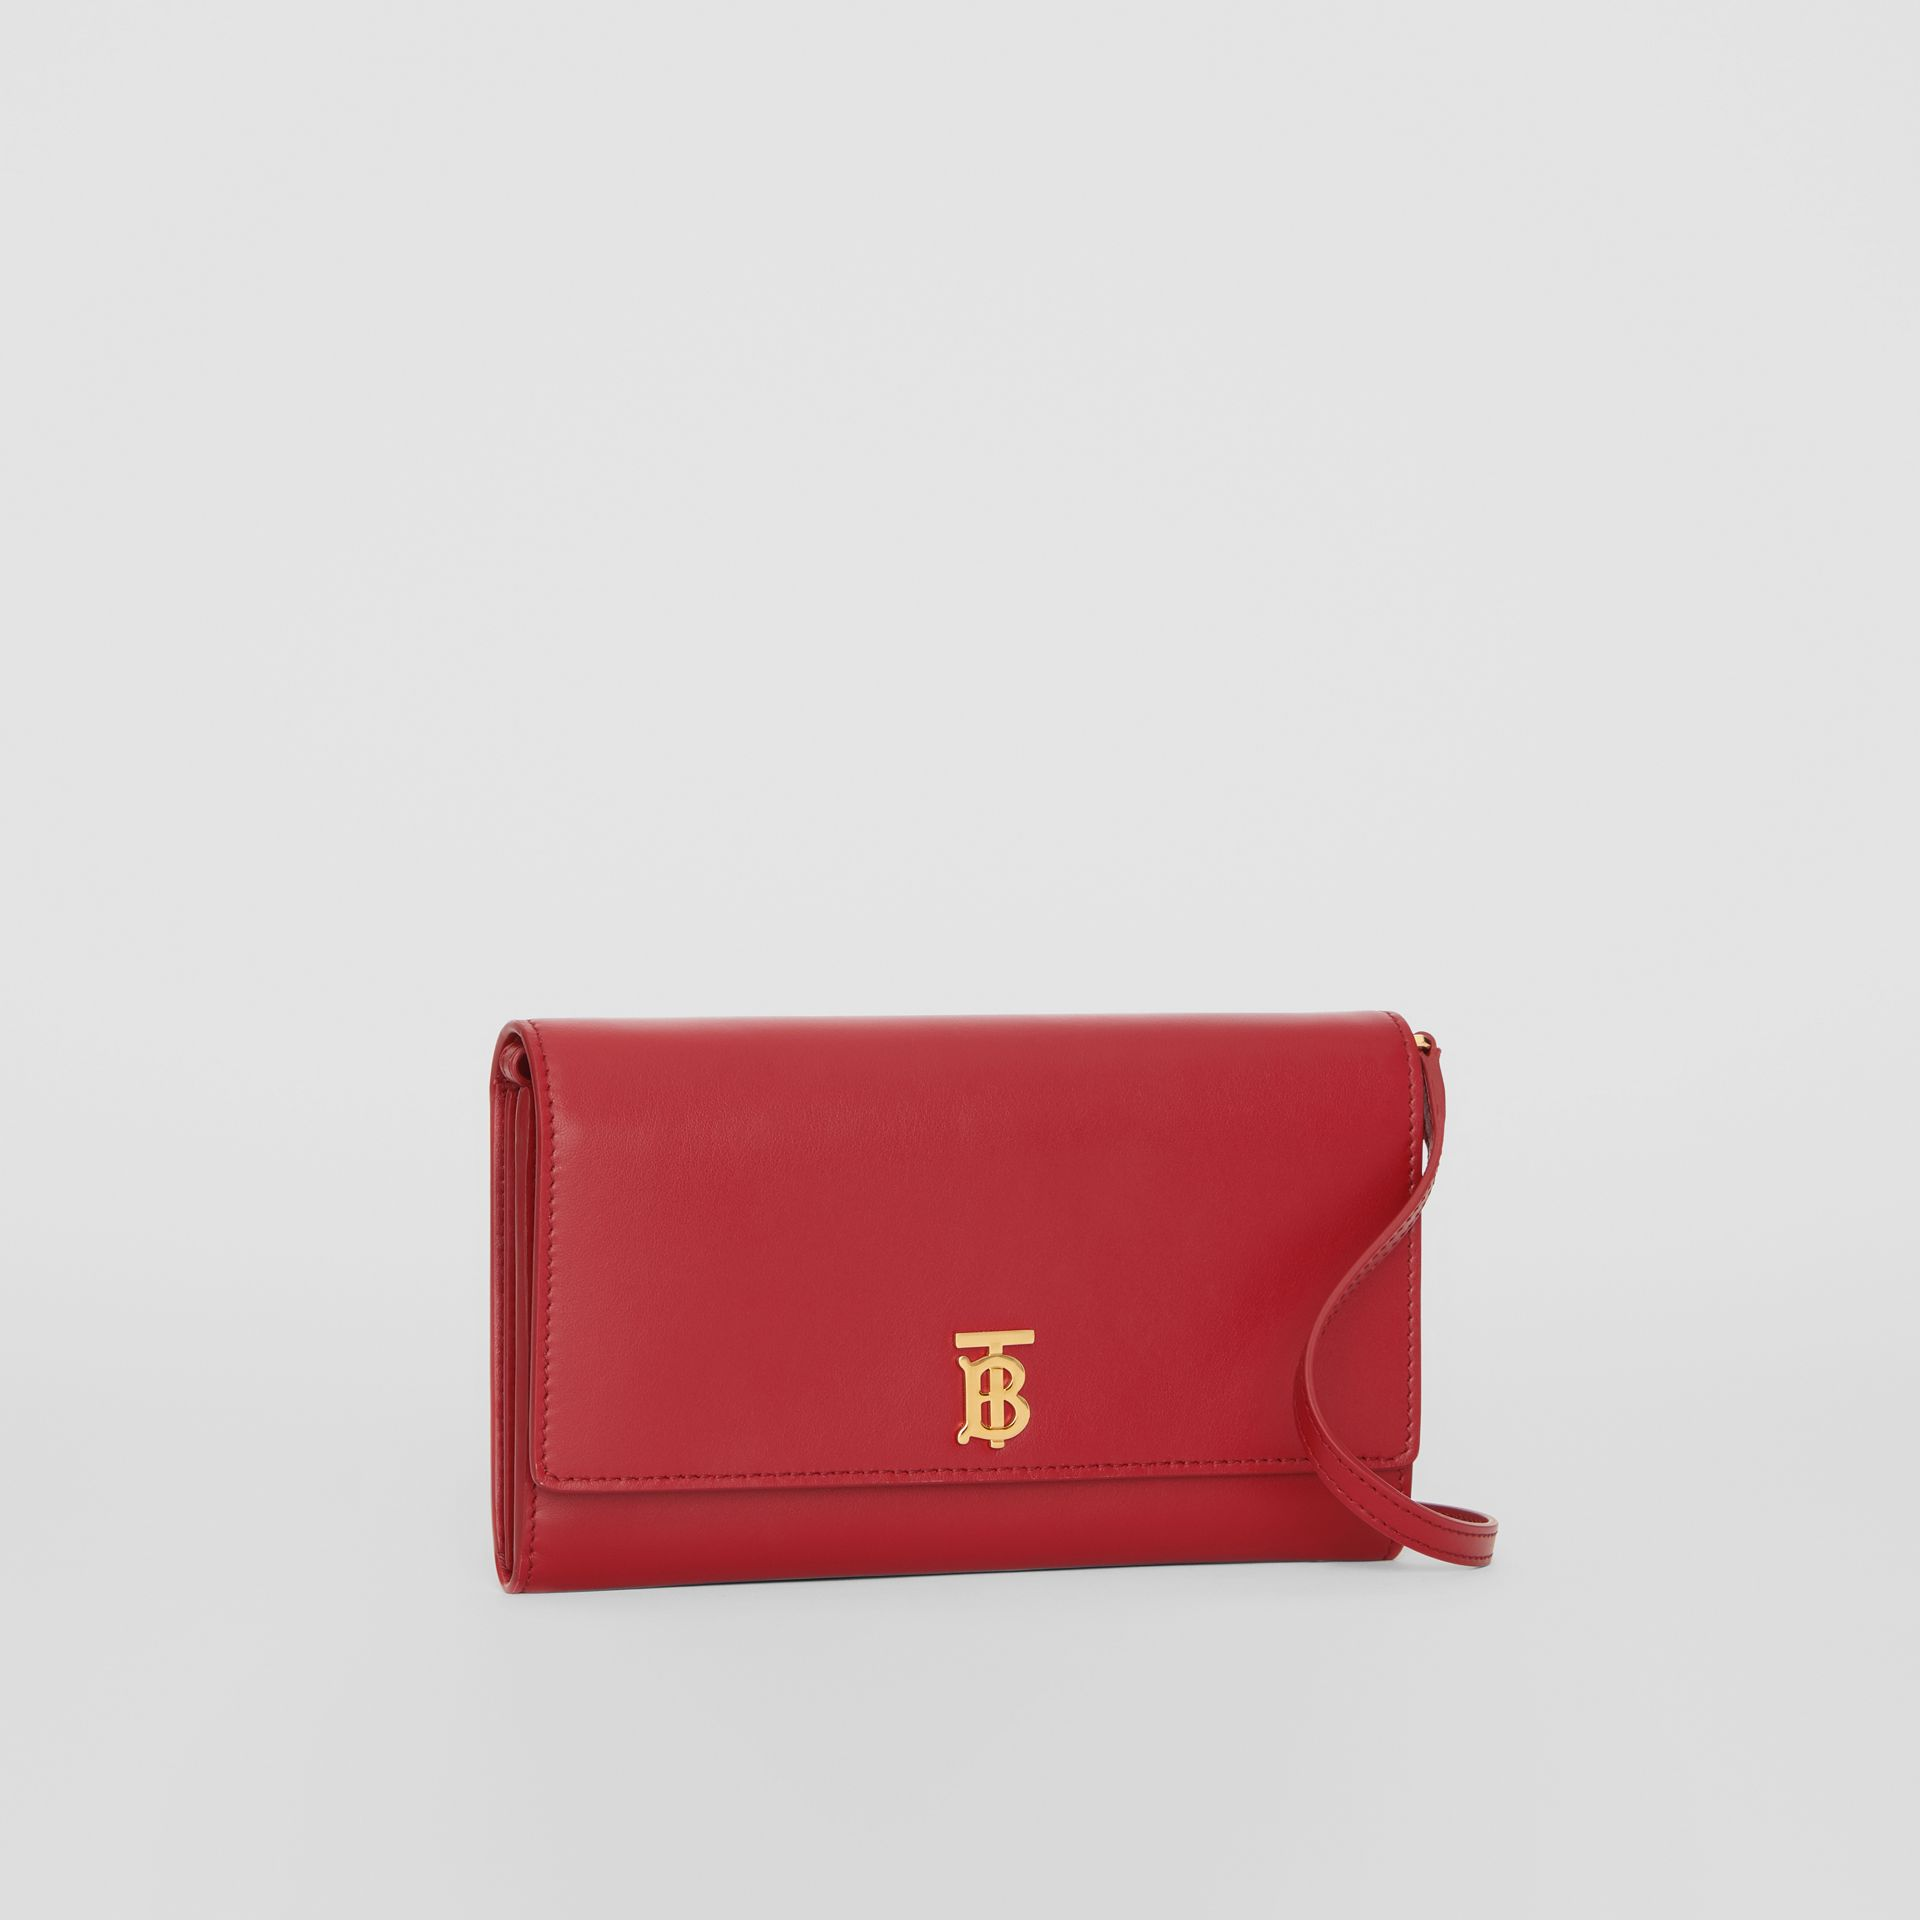 Monogram Motif Leather Wallet with Detachable Strap in Crimson - Women | Burberry United States - gallery image 6